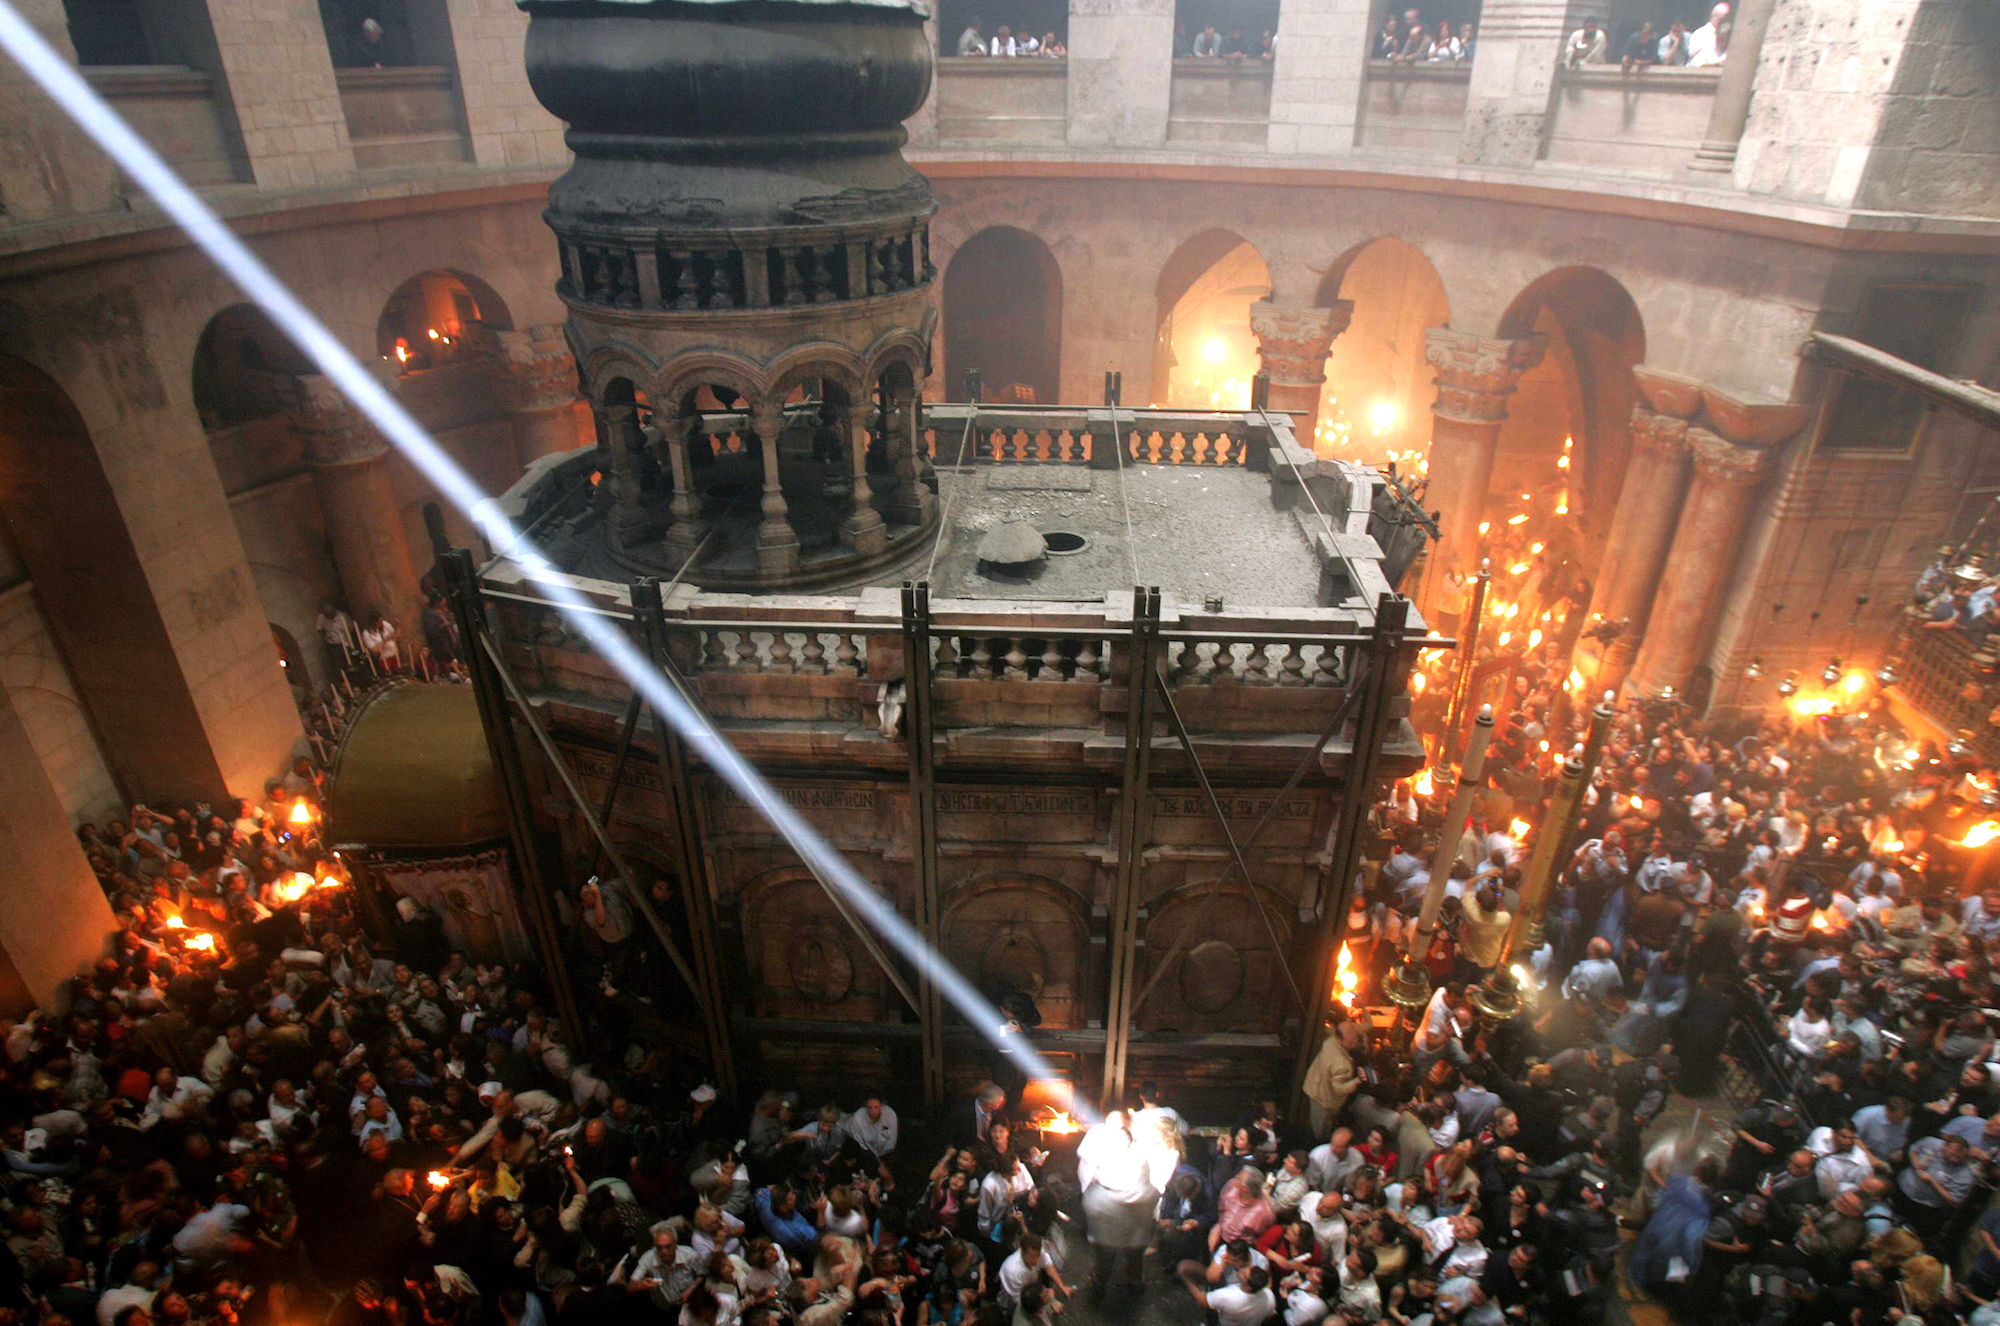 A single shaft of sunlight streams into the Church of the Holy Sepulchre, illuminating the spot where fire erupted from the Tomb of Christ during the ceremony of the Holy Fire on Saturday, the day before Orthodox Christian Easter, in 2005. Fire comes from within the tomb and is quickly spread to candles held by the faithful of Greek Orthodox, Armenian and Coptic denominations. More than 10,000 Orthodox pilgrims filled the church that year. Jerusalem, April 30, 2005 (Photo by Heidi Levine/Sipa Press).